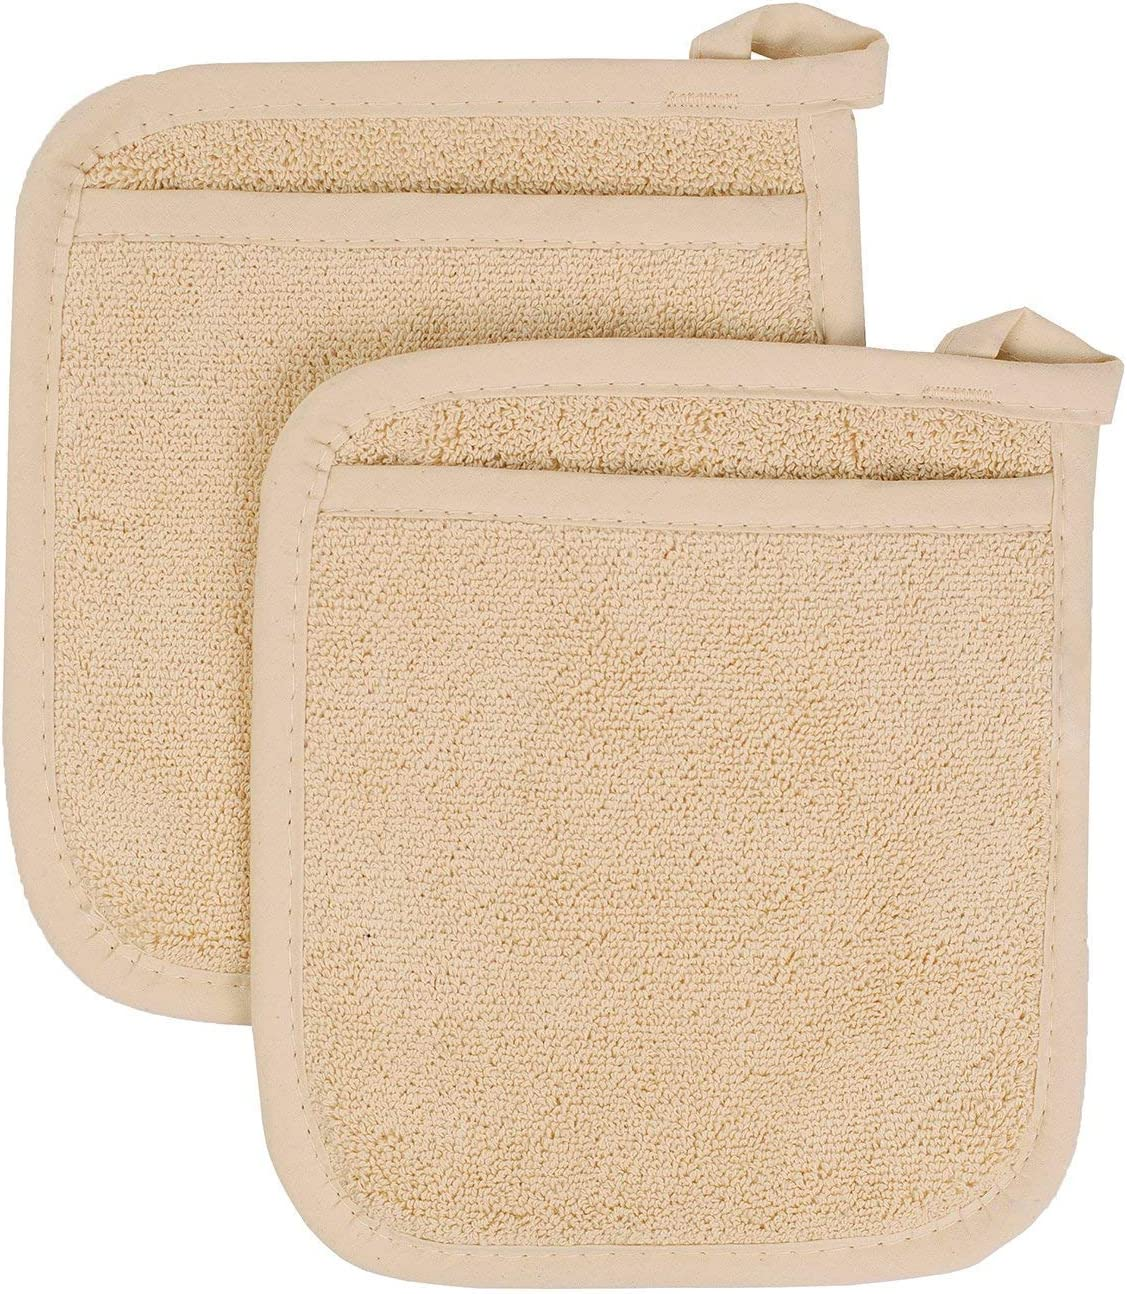 AZ COLLECTION 100% Cotton Terry Cloth Ho Popular shop is the lowest price challenge Set Kitchen Special price for a limited time Holder Pot